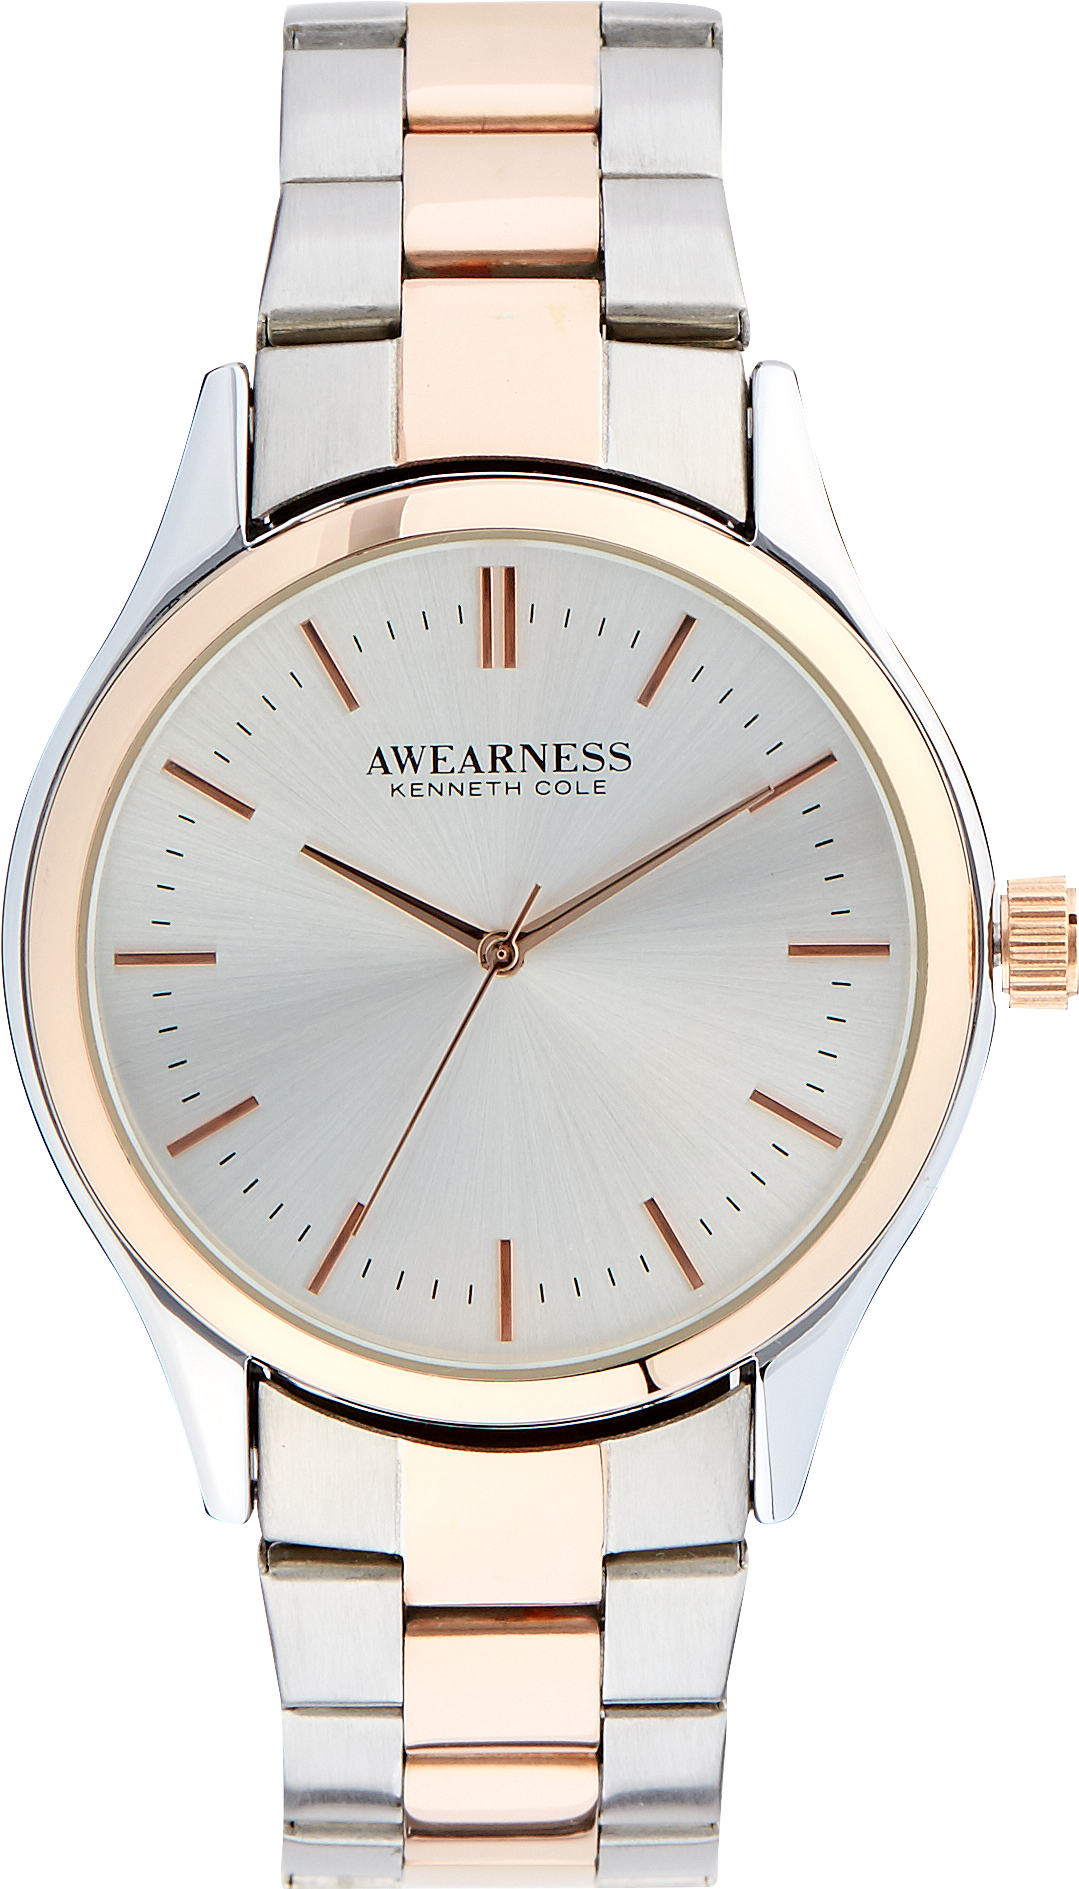 Awearness Kenneth Cole Silver Rose Gold Watch Mens Jewelry and